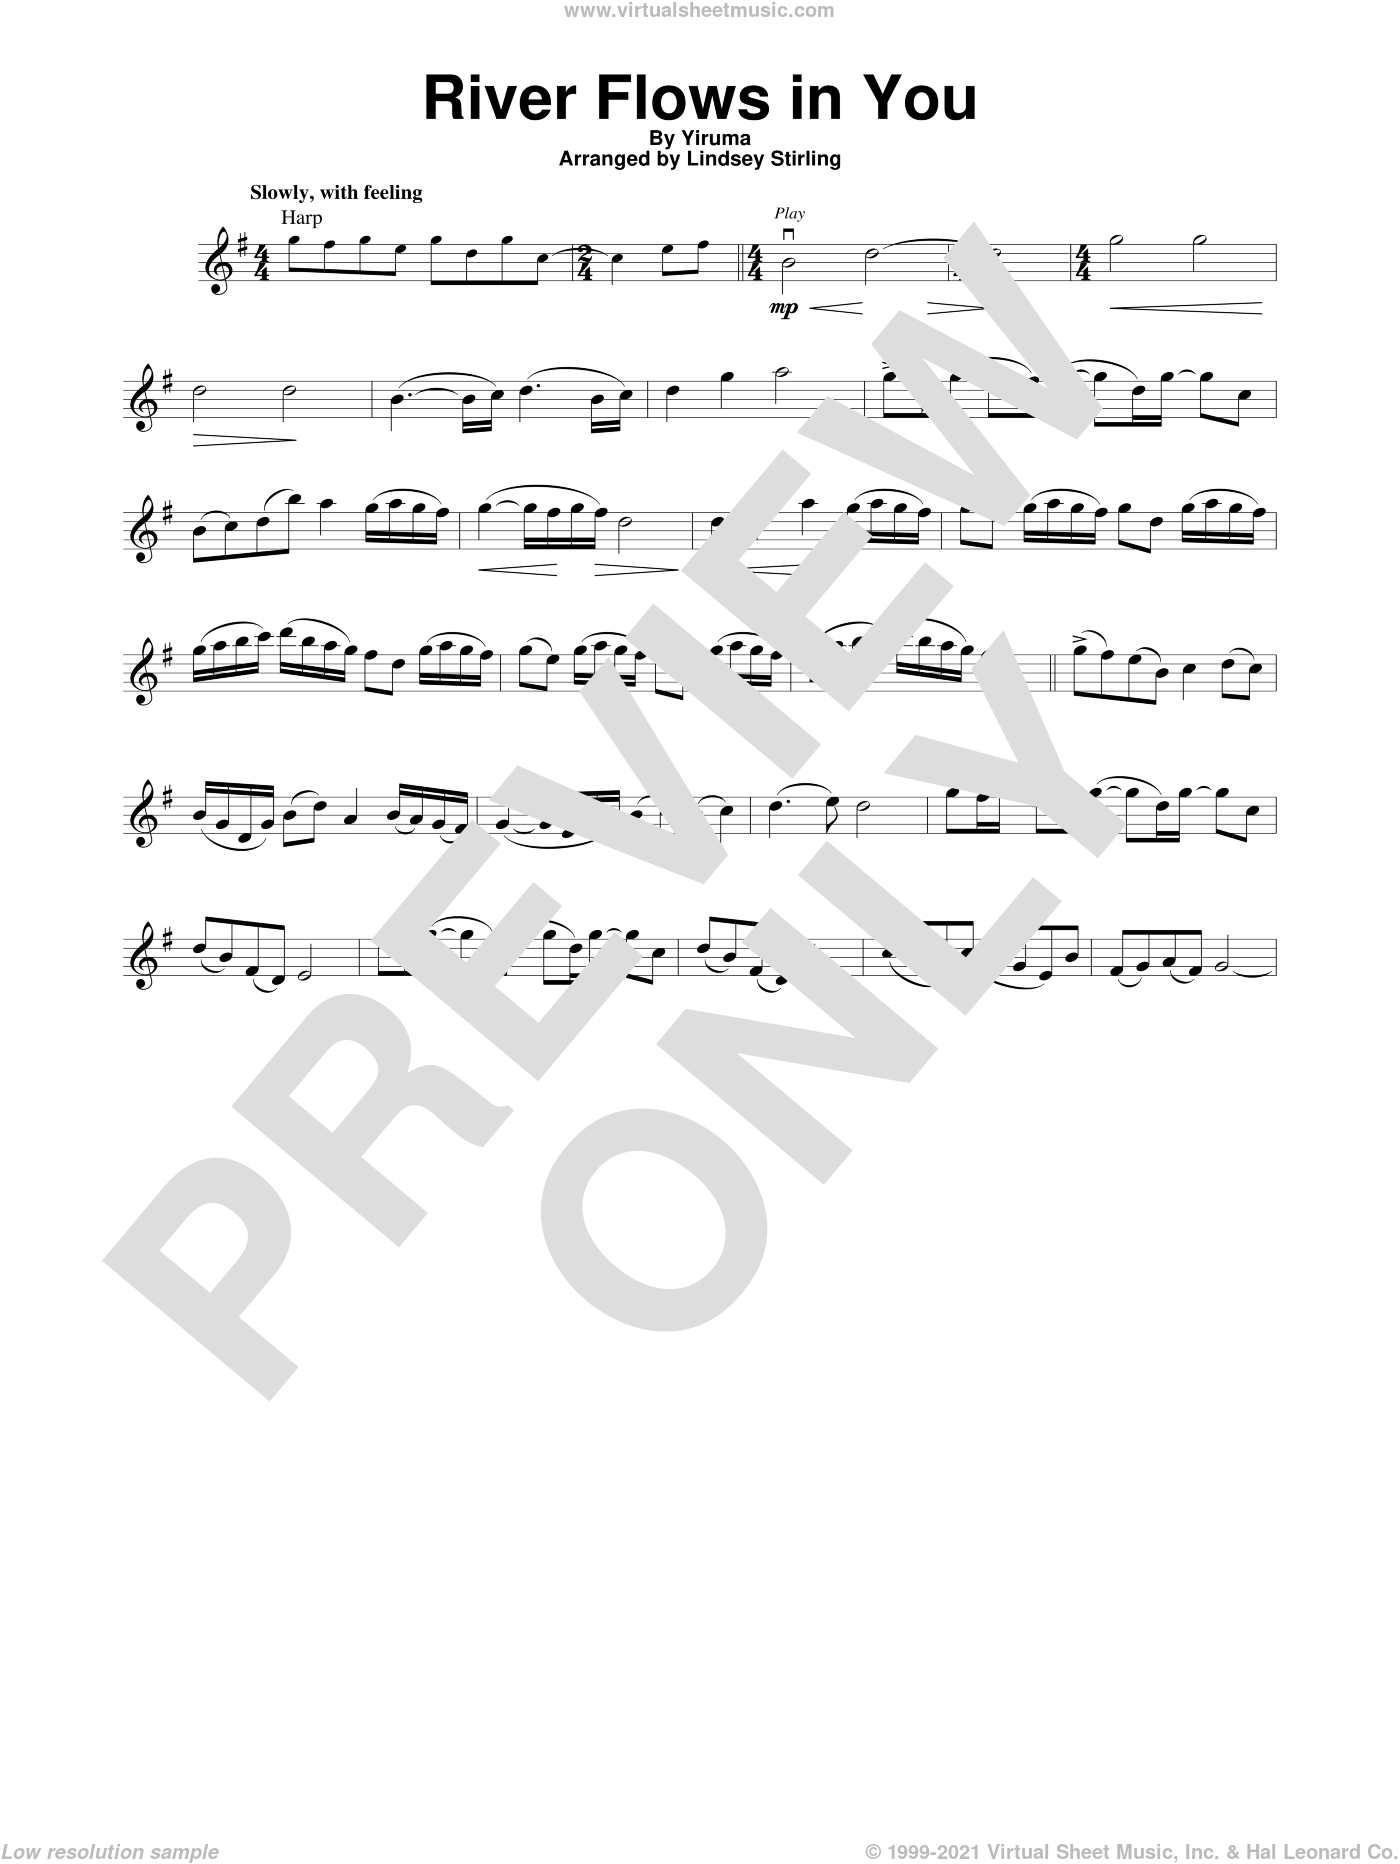 River Flows In You sheet music for violin solo by Yiruma and Lindsey Stirling, intermediate